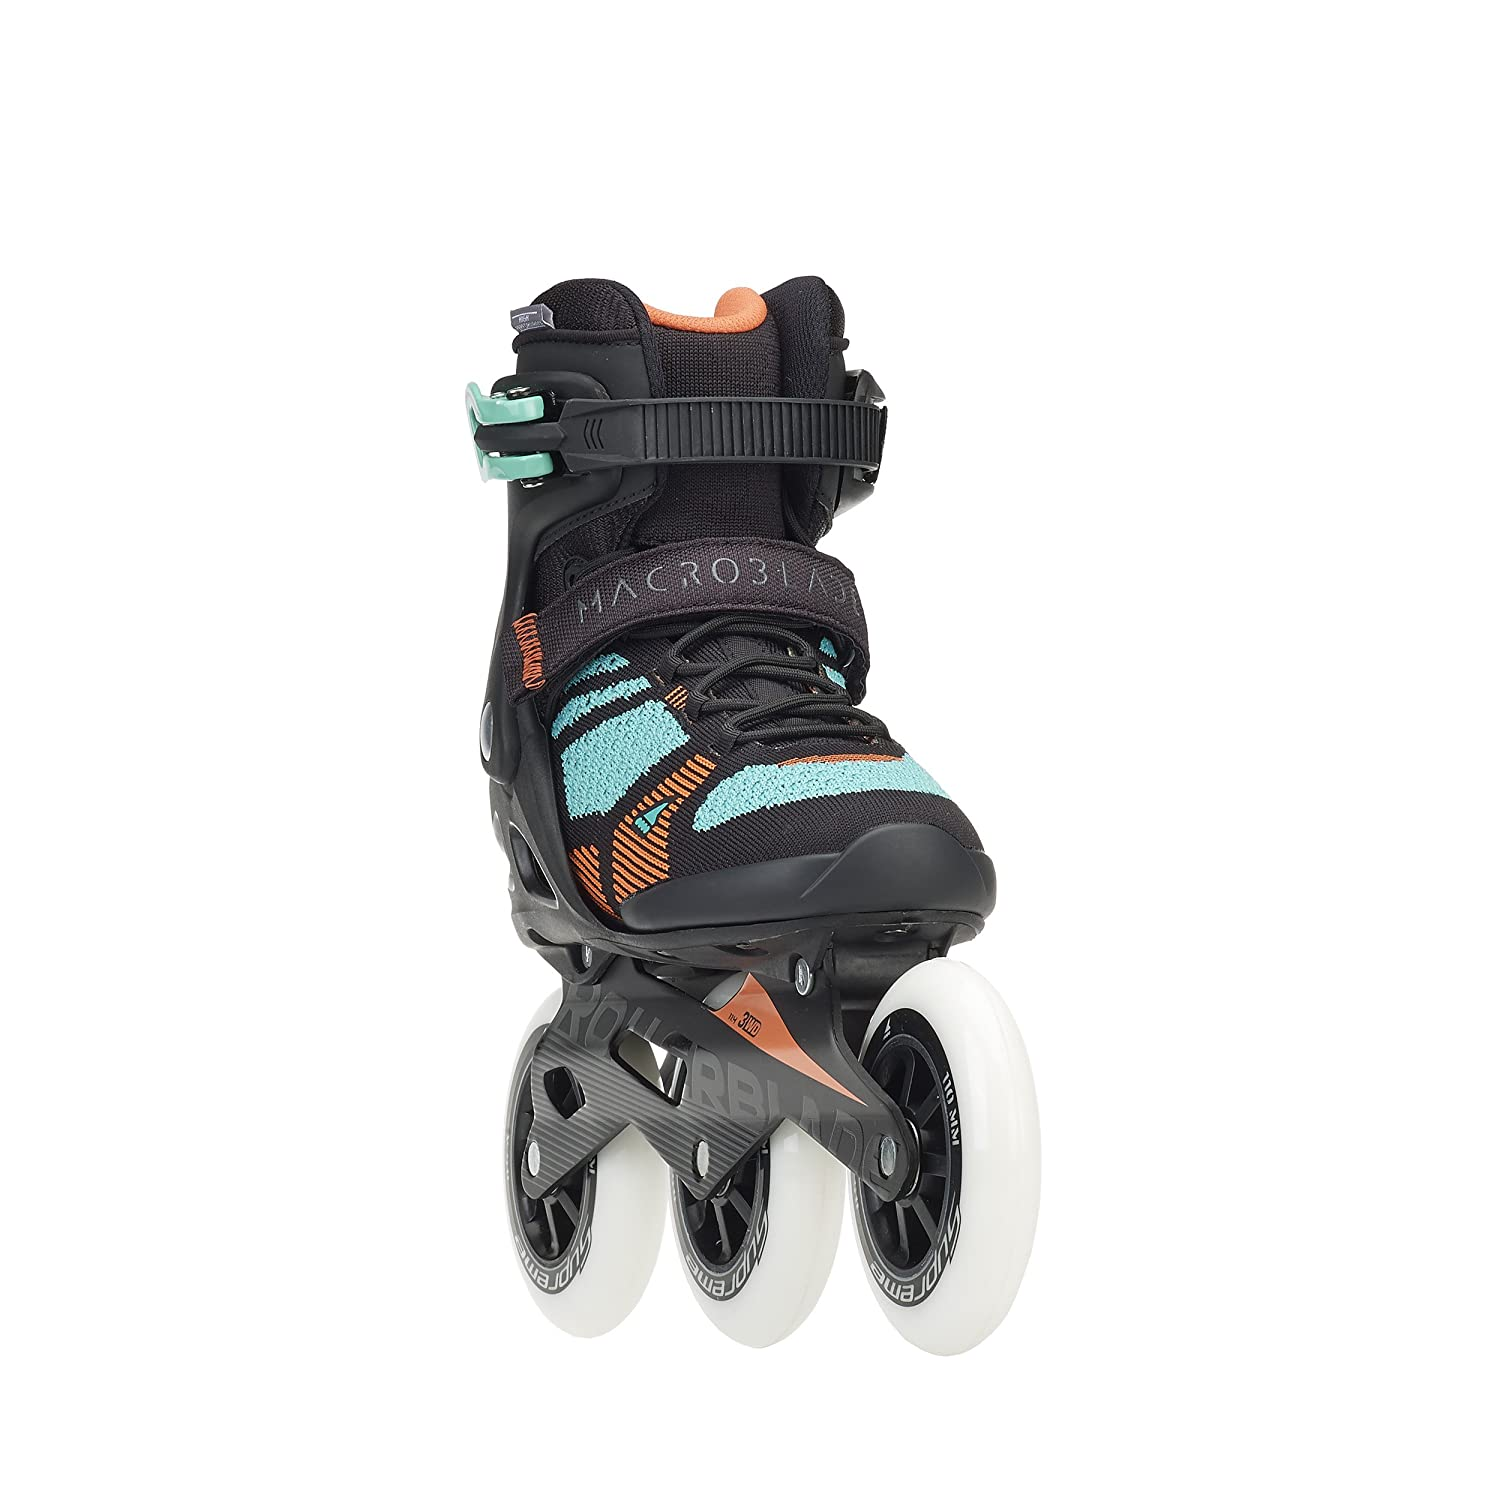 Rollerblade Macroblade 110 3WD Women s Adult Fitness Inline Skate, Black and Emerald, High Performance Inline Skates